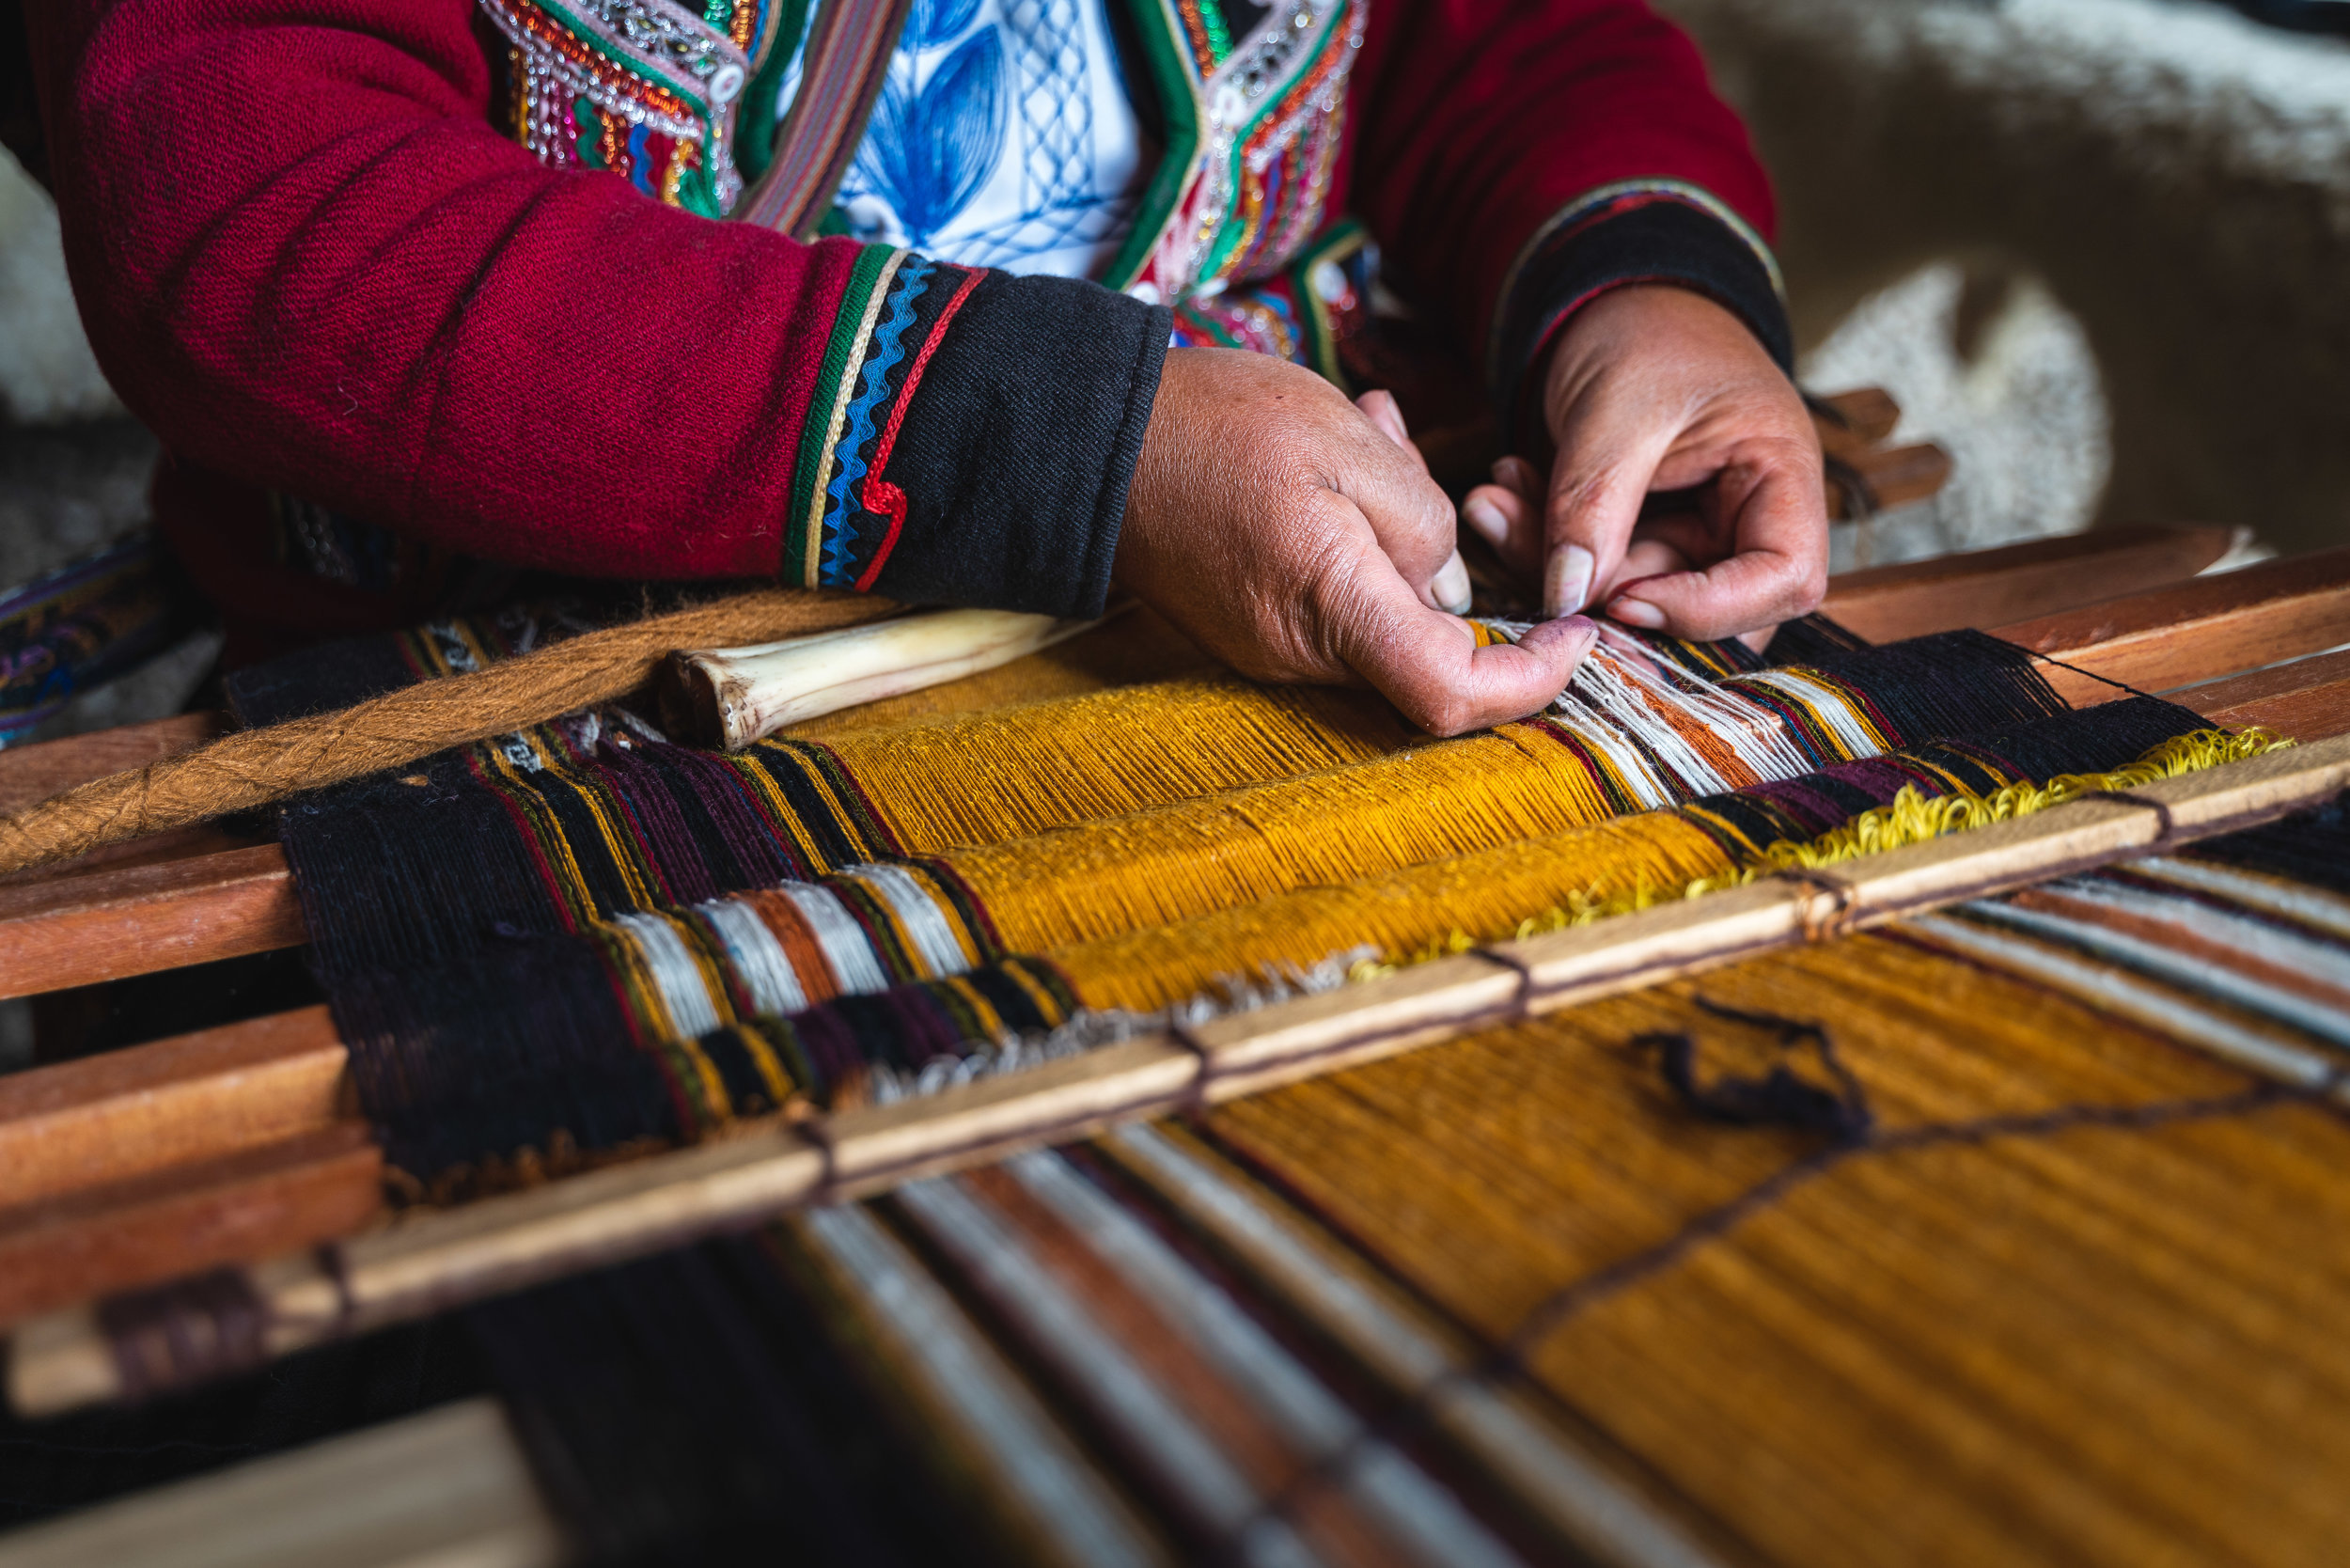 Chinchero textile market and the weaving tradition passed through generations.